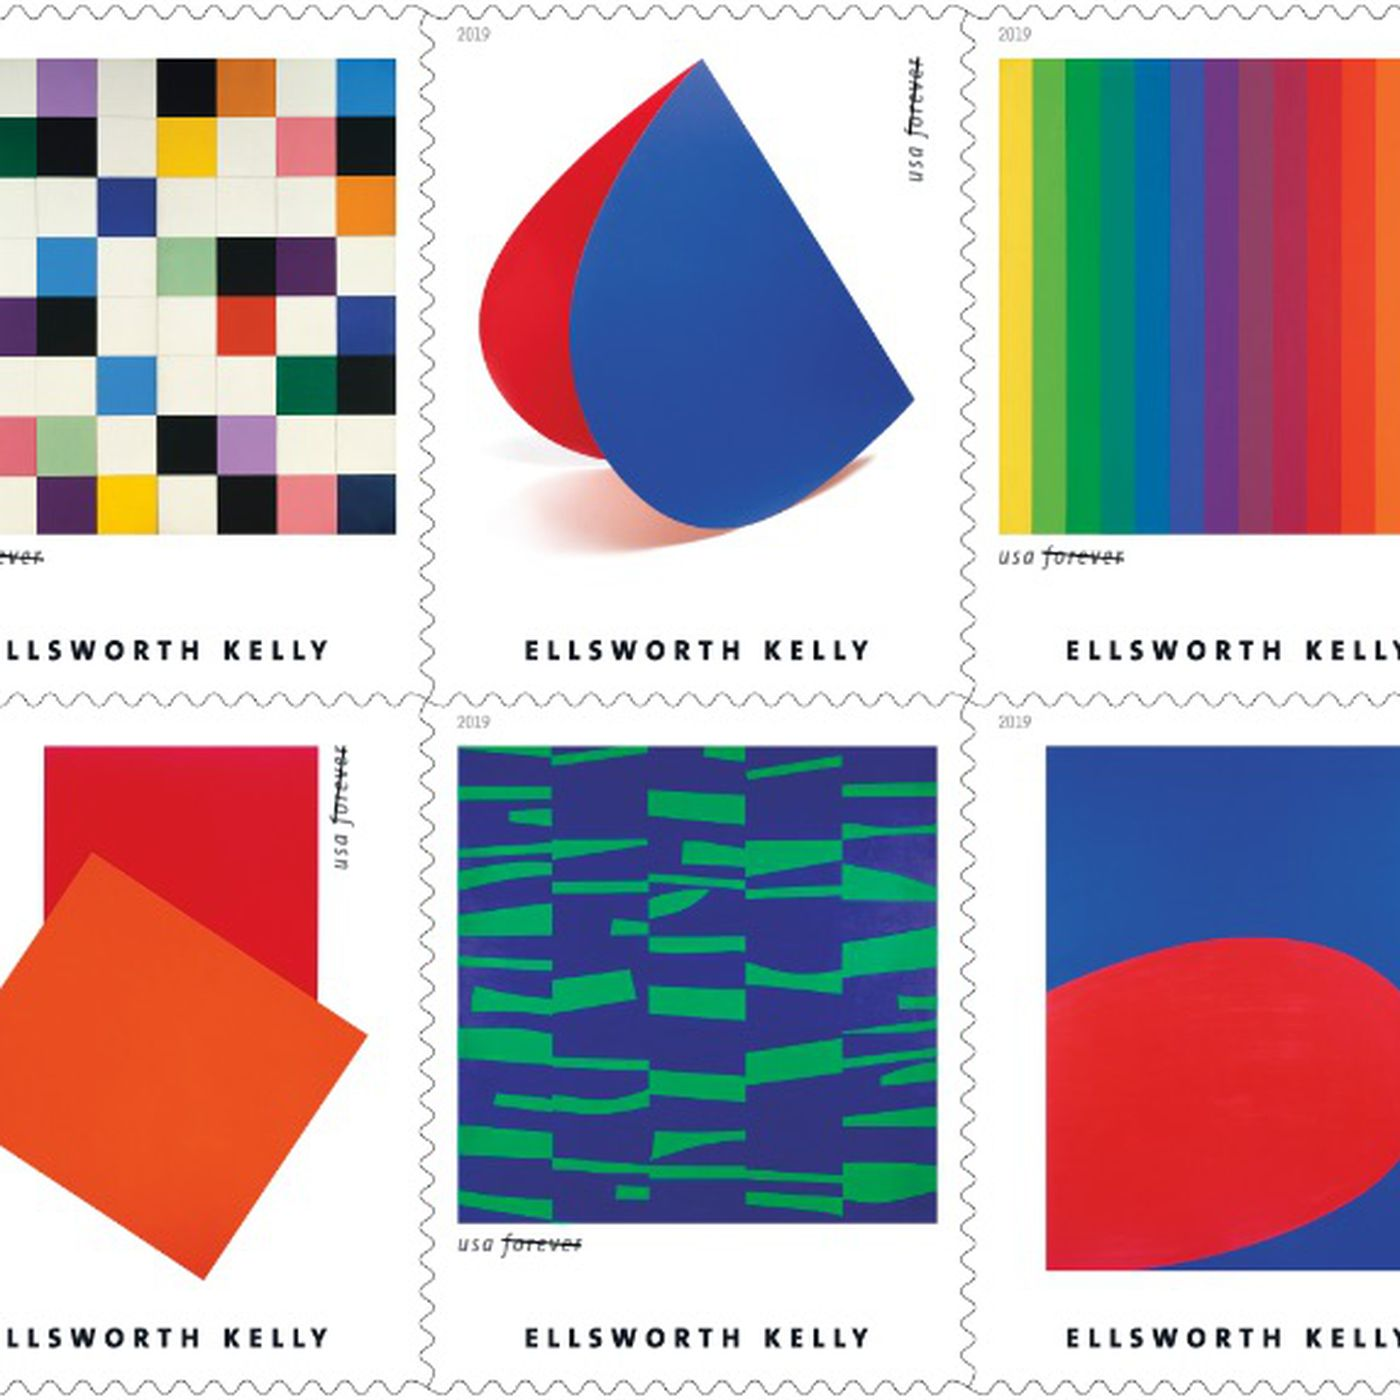 Ellsworth Kelly stamps are part of USPS 2019 releases - Curbed